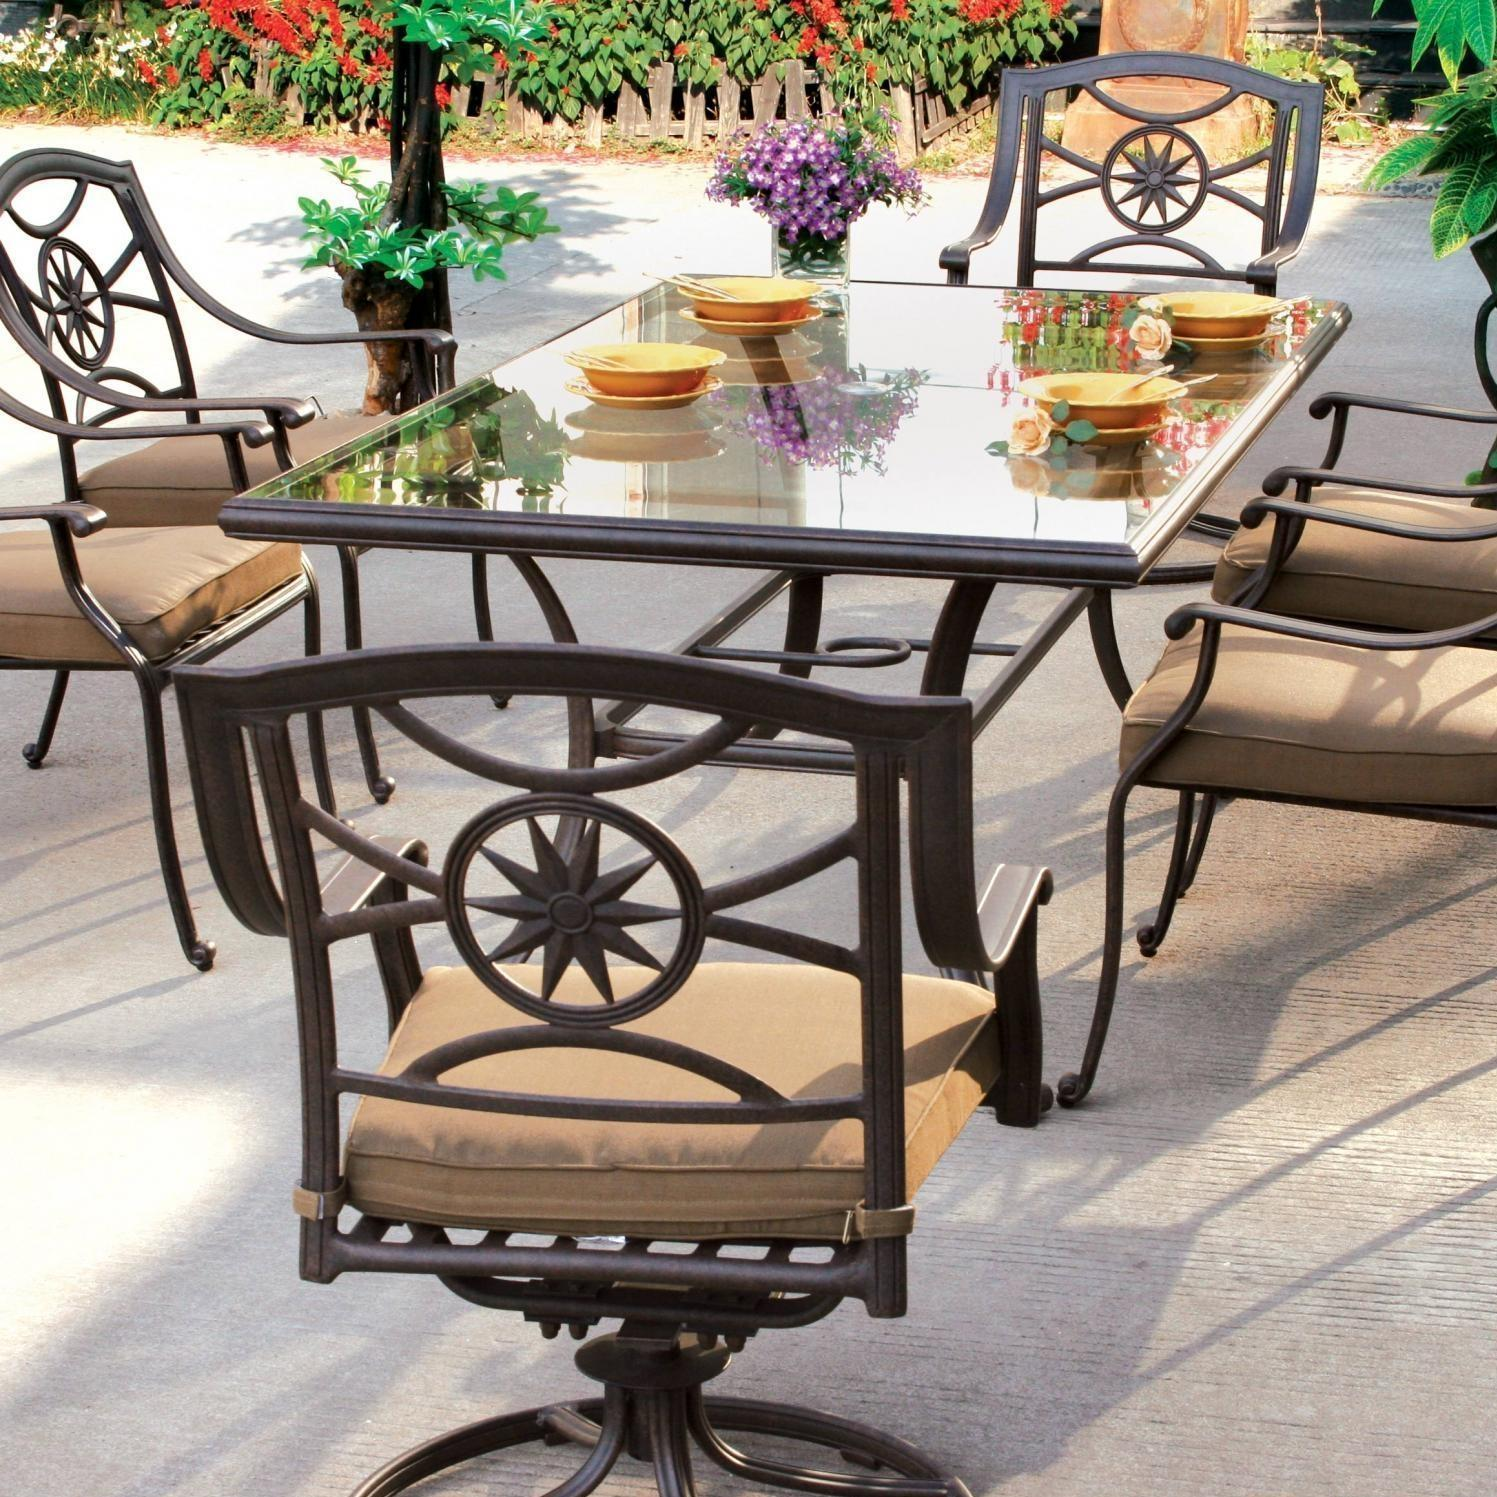 Darlee Ten Star Cast Aluminum Patio Dining Set With Glass Top Table - Seats 6 at Sears.com